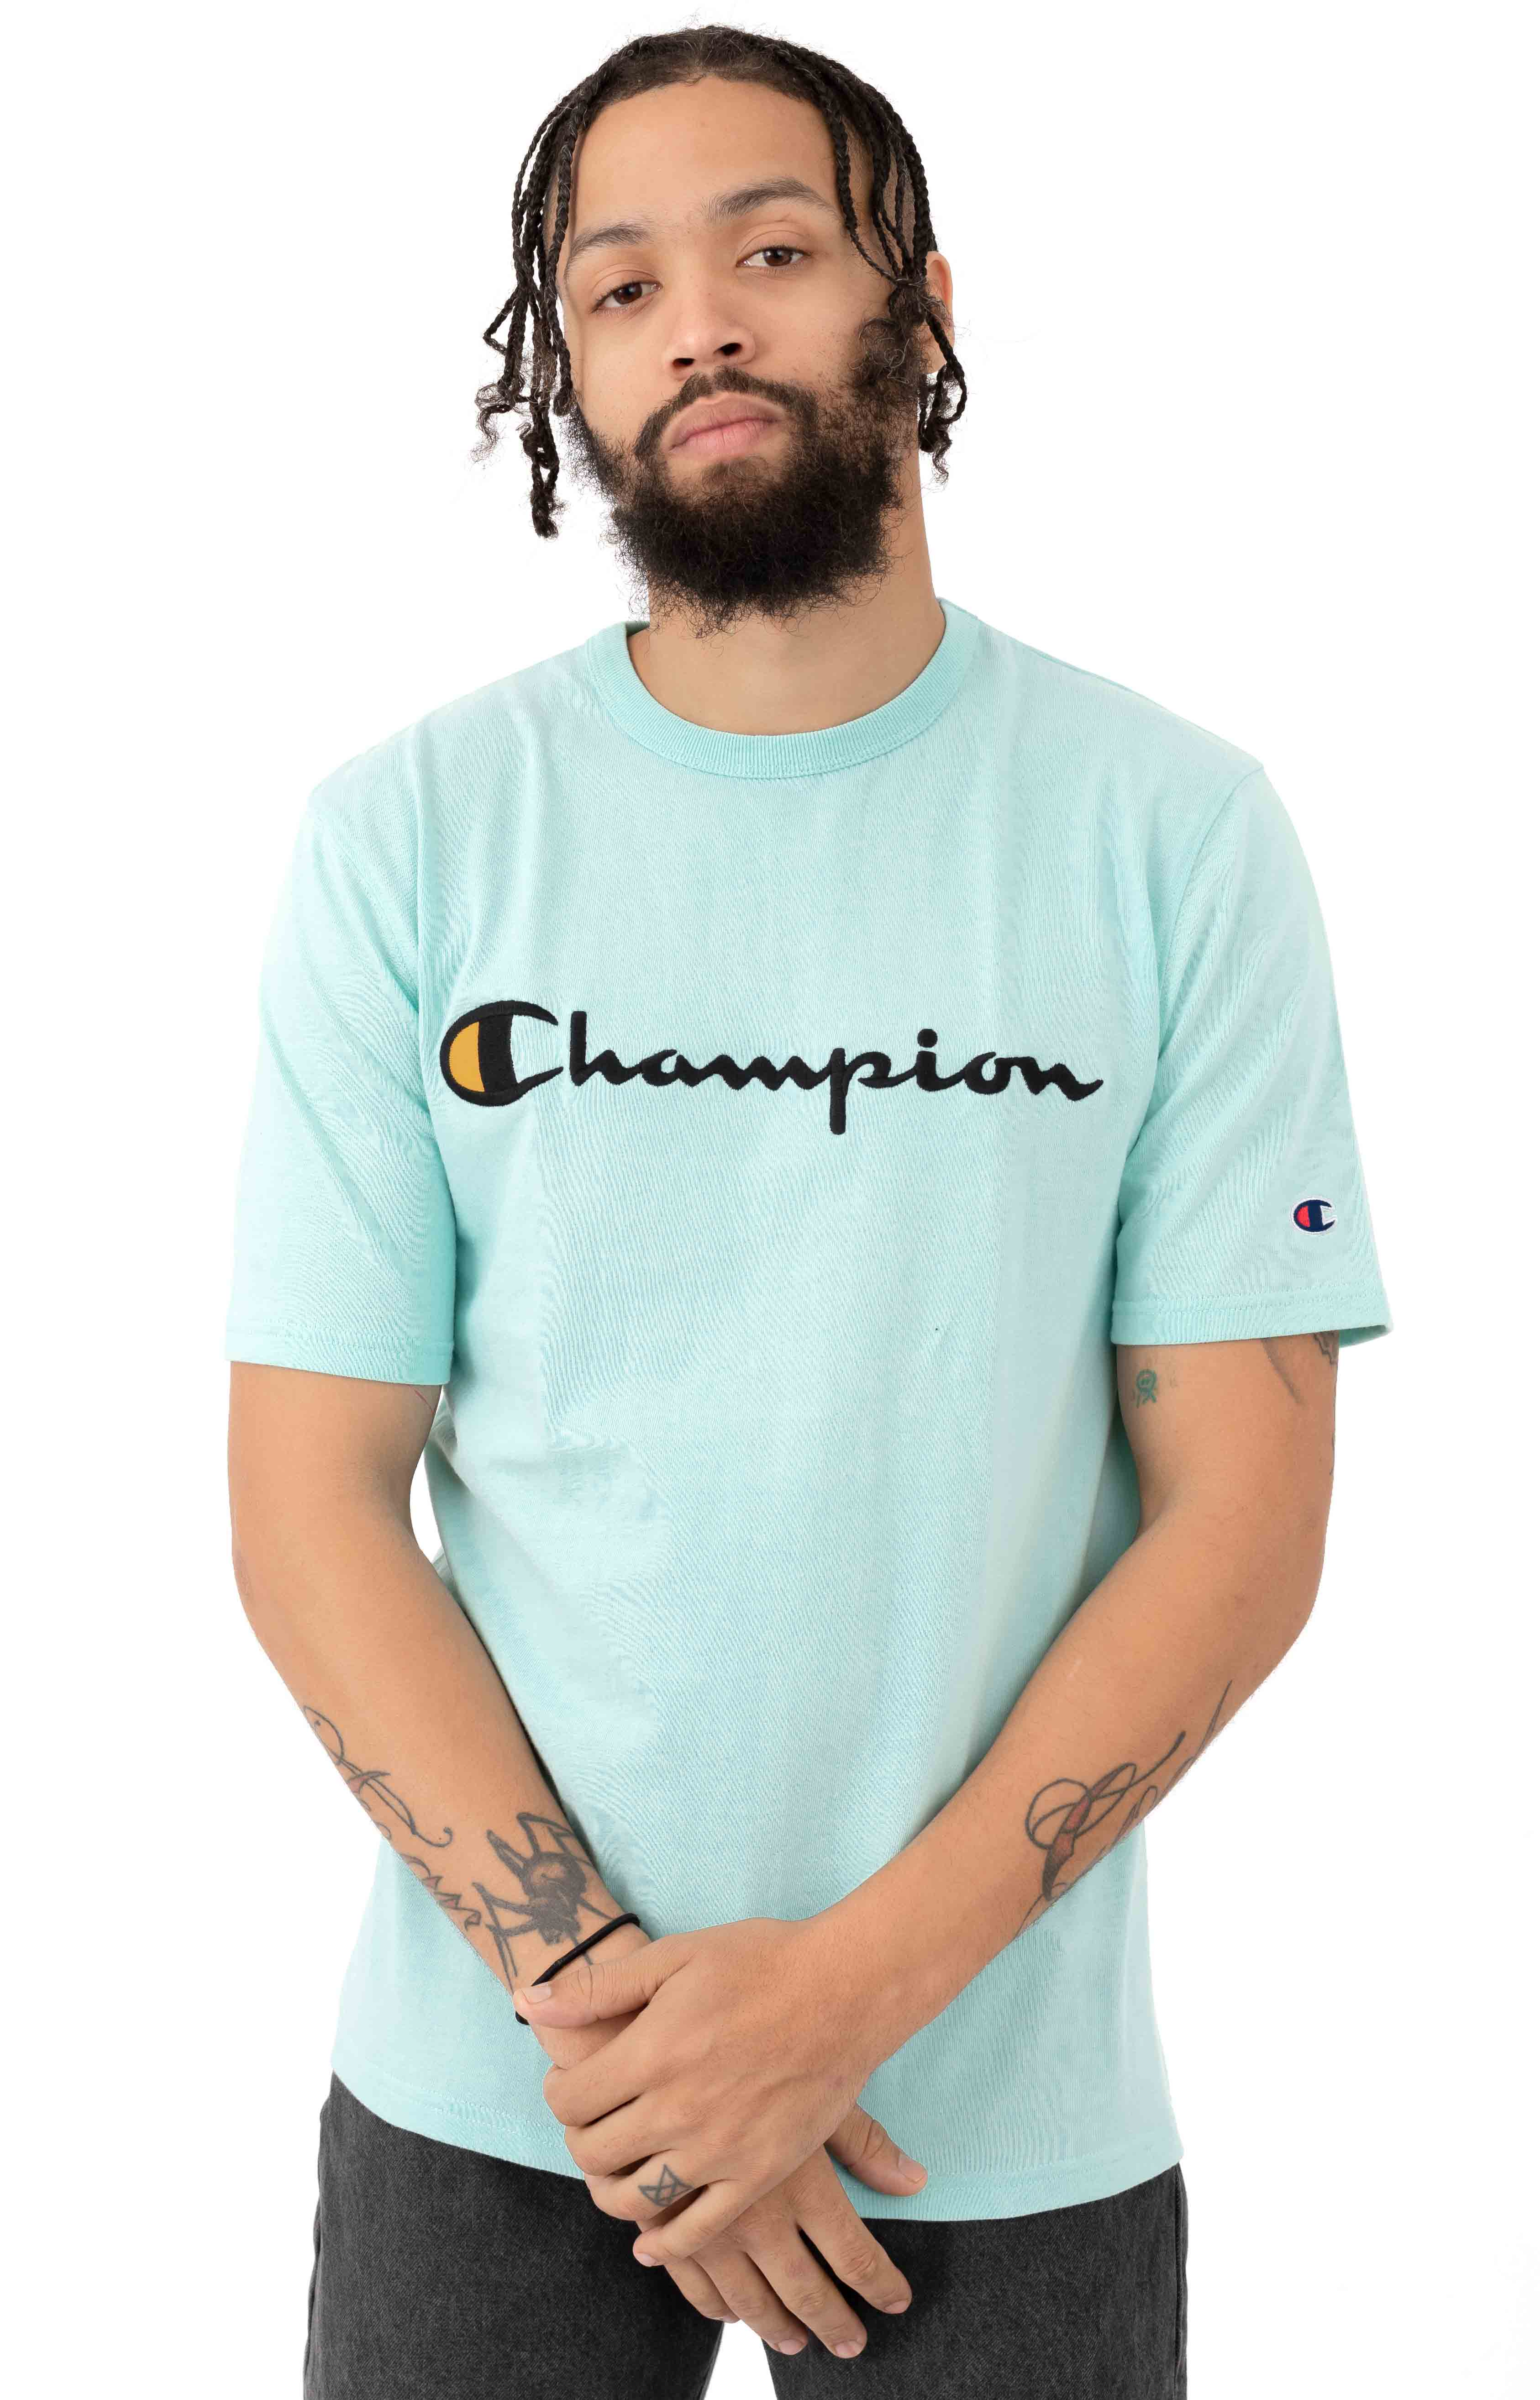 Champion LIFE, Heritage Script Embroidered T-Shirt - Waterfall Green